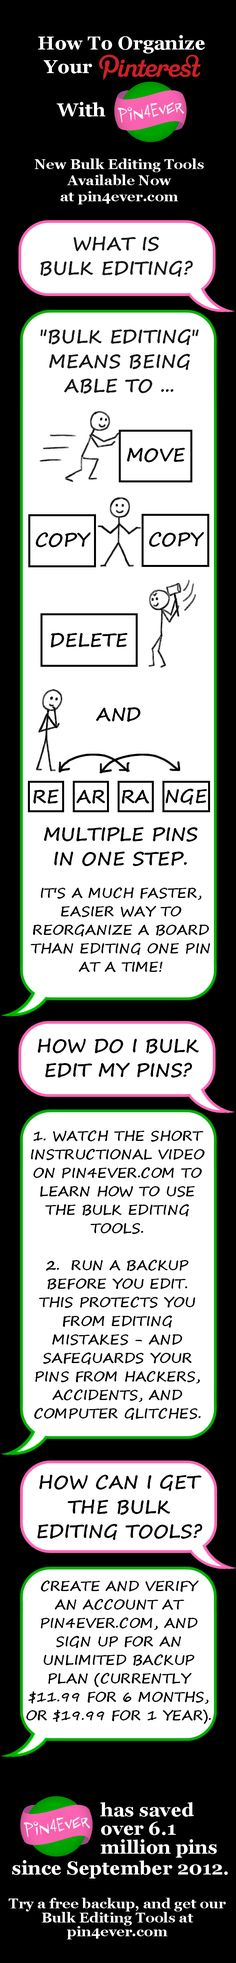 Back up and organize your Pinterest pins with Pin4Ever! We've helped our customers save over 6.1 million pins since September 2012, and yours can be next. Visit www.pin4ever.com to learn more about our backups and our NEW Bulk Editing Tools, read testimonials, and try a FREE backup!